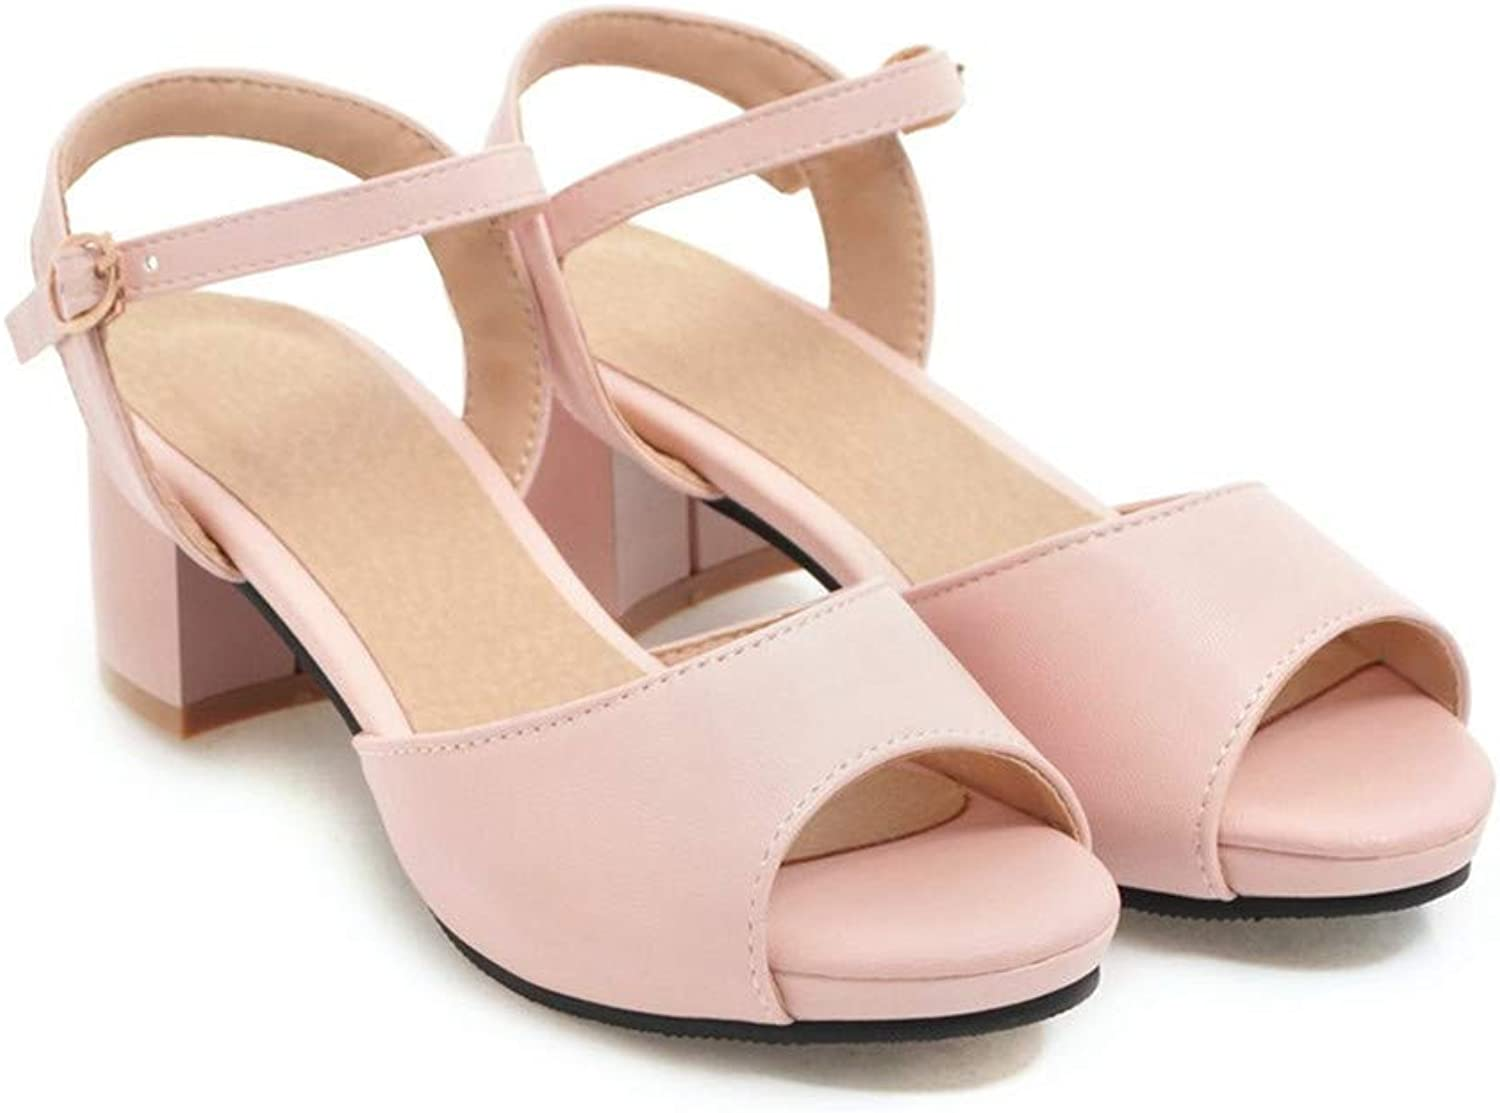 GAO-GEN1 Woman Sandals Big Size 34-47 Summer shoes Simple Buckle shoes Comfortable Square Heel shoes